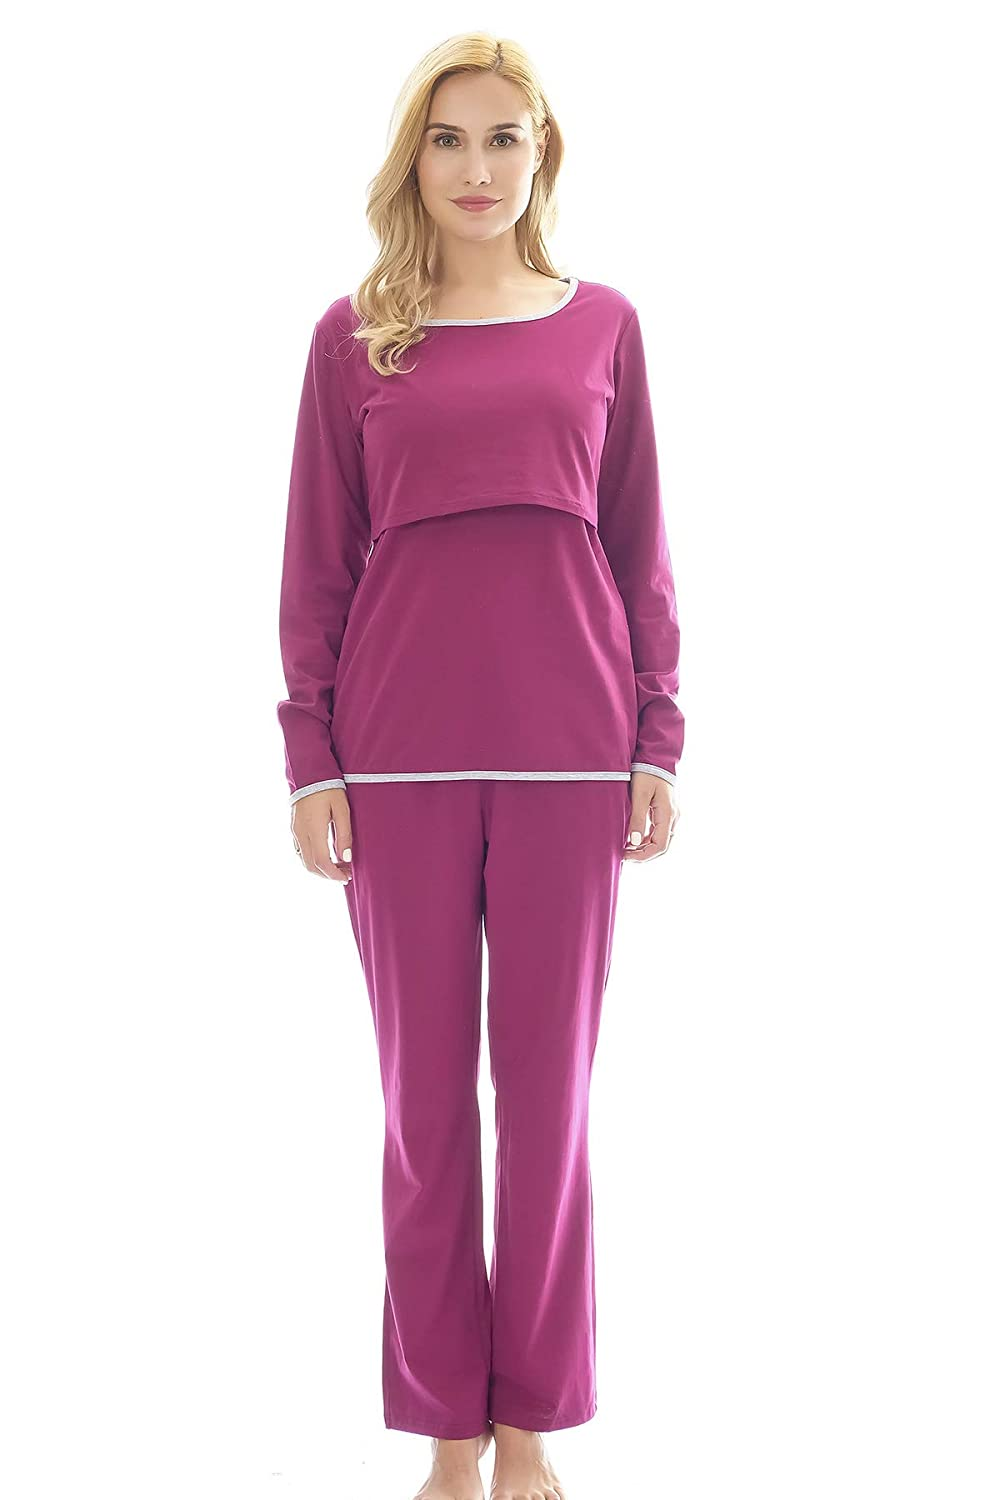 Bearsland Women's Maternity Pregnancy Sleepwear Set Nursing Breastfeeding Pajamas